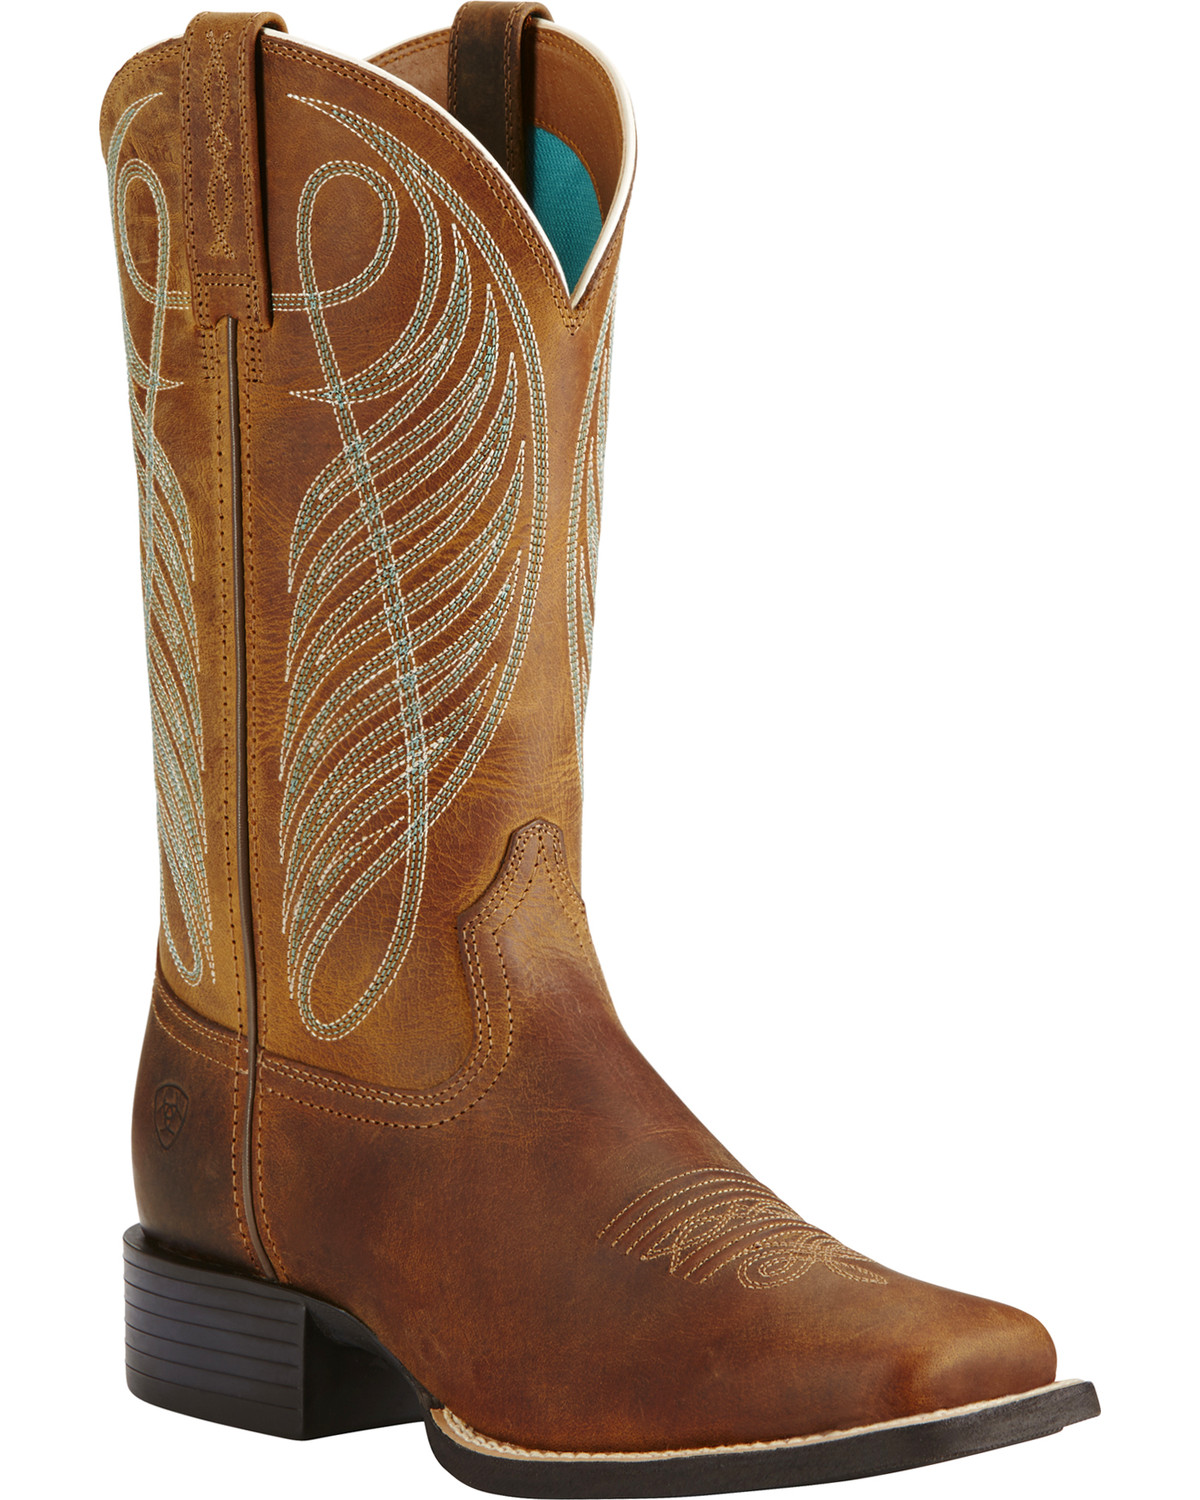 Awesome ARIAT Size 6 Cassidy Turquoise Black Glazed Midnight Square Toe Boots 10014178 | EBay